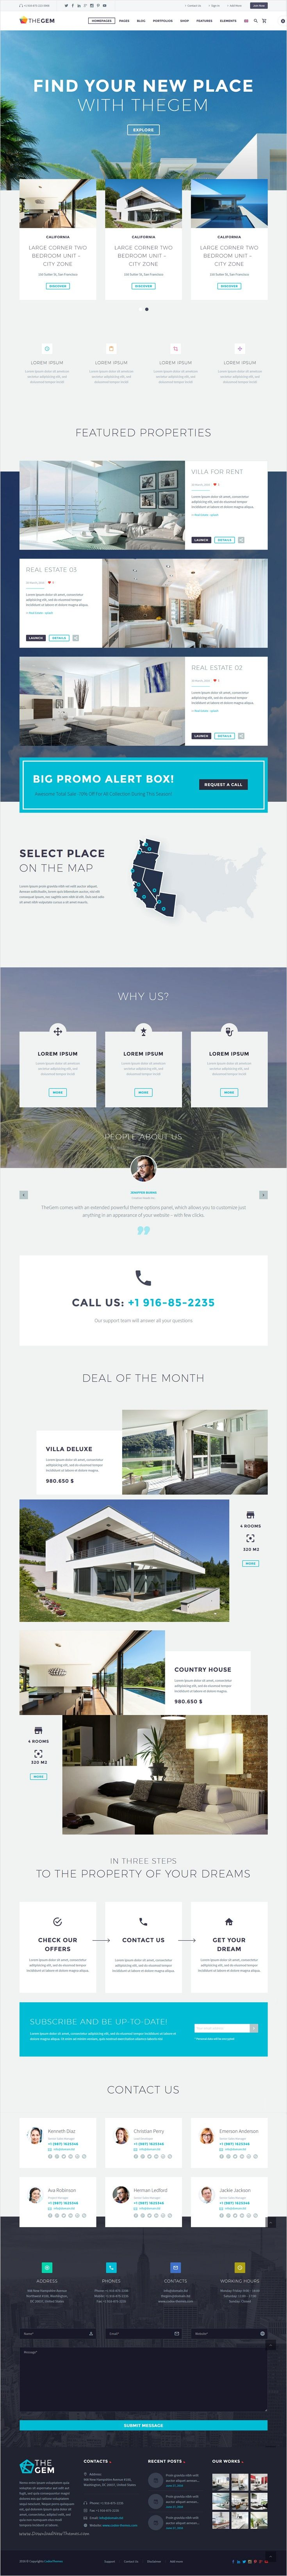 TheGem is a versatile responsive #WordPress theme with modern creative design for #realestate #property website with 40+ stunning homepage layouts download now➩ https://themeforest.net/item/thegem-creative-multipurpose-wordpress-theme/16061685?ref=Datasata